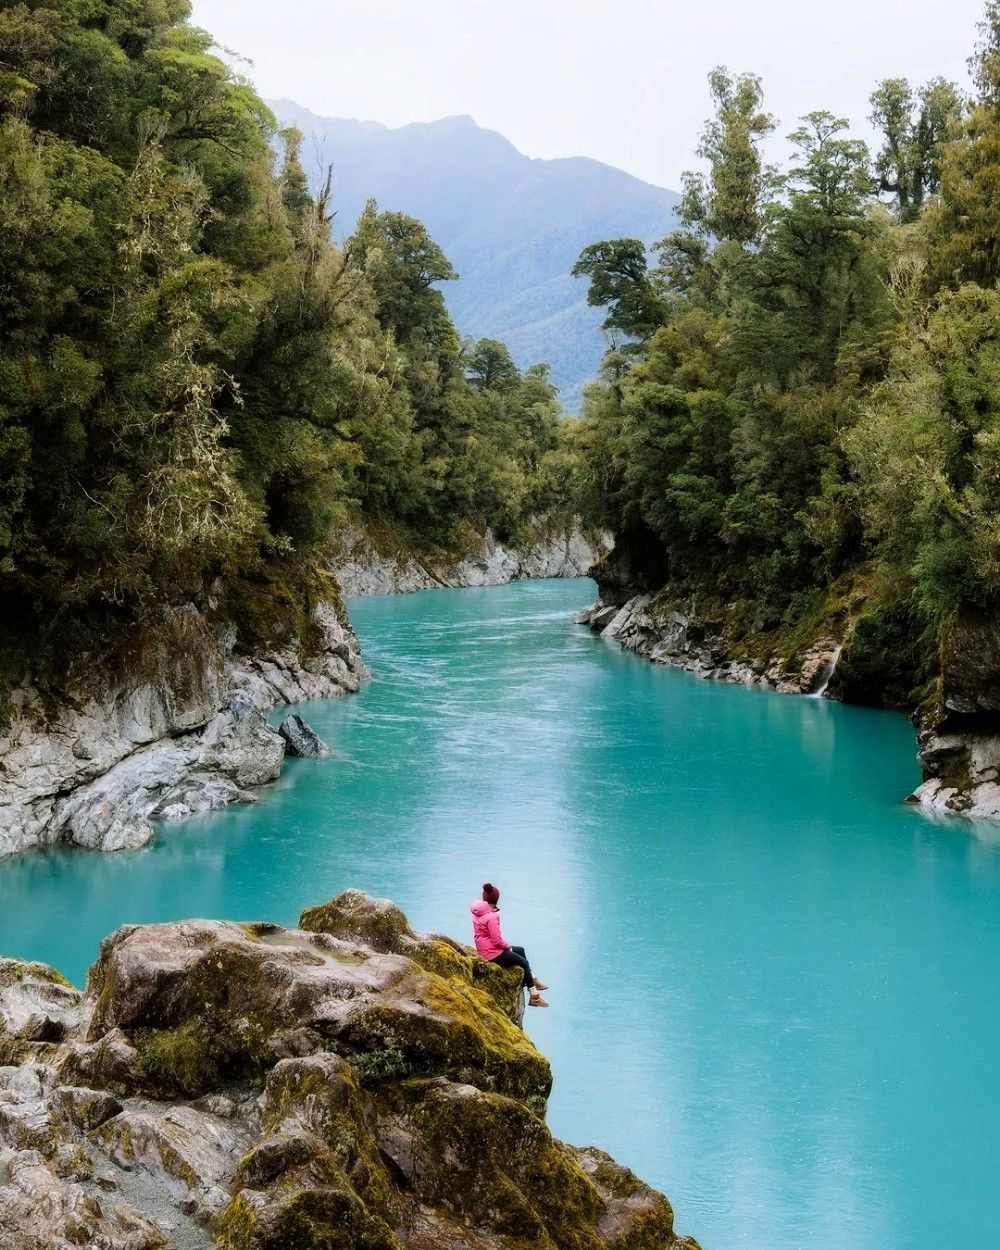 Must See Places On The South Island Of New Zealand  Renee Roaming12 Must See Places On The South Island Of New Zealand  Renee Roaming  Perfect for WORK  TRAVEL The capaci...